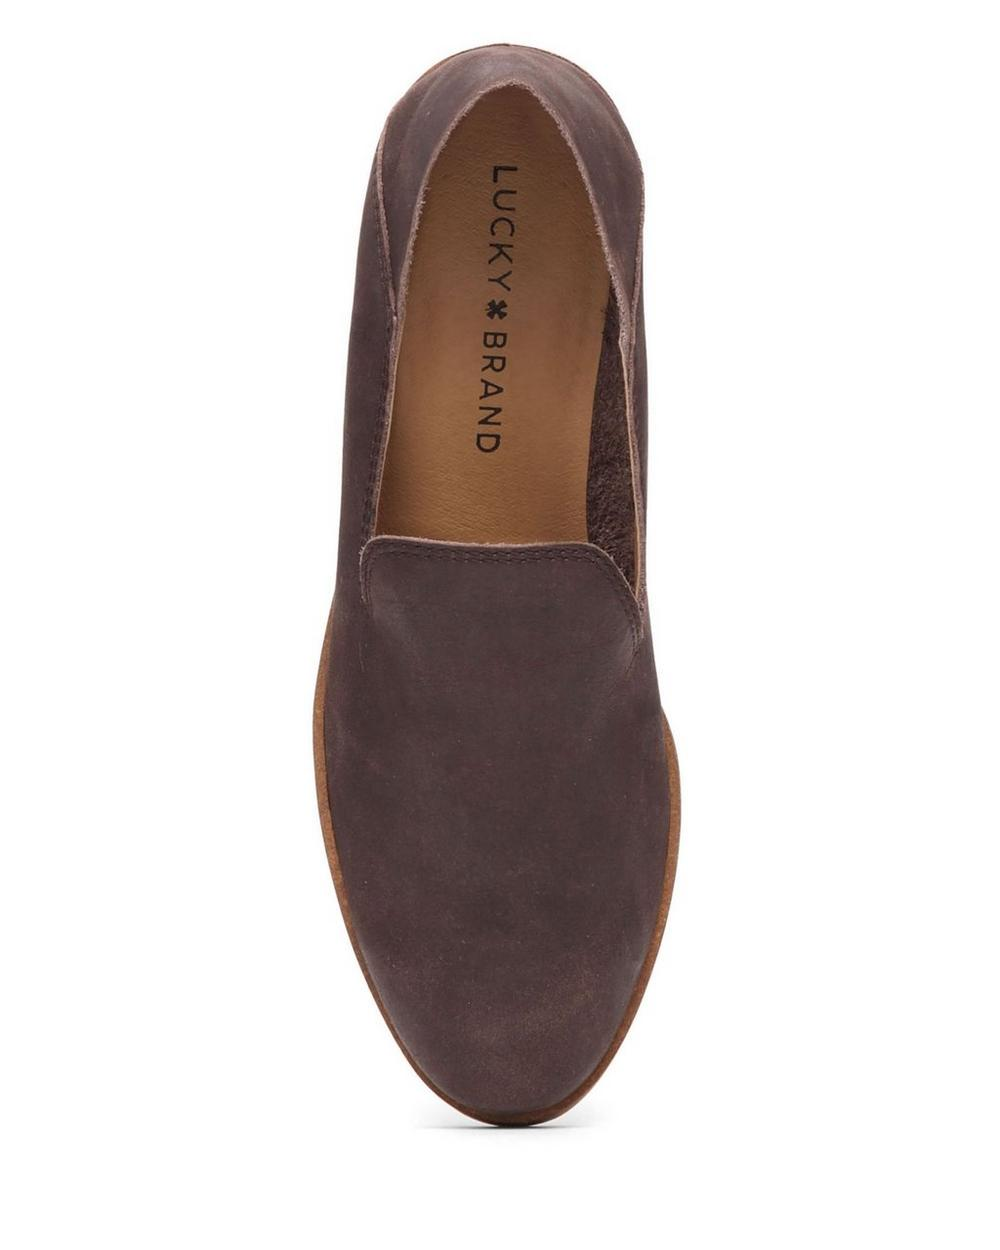 CAHILL LEATHER FLAT, image 9